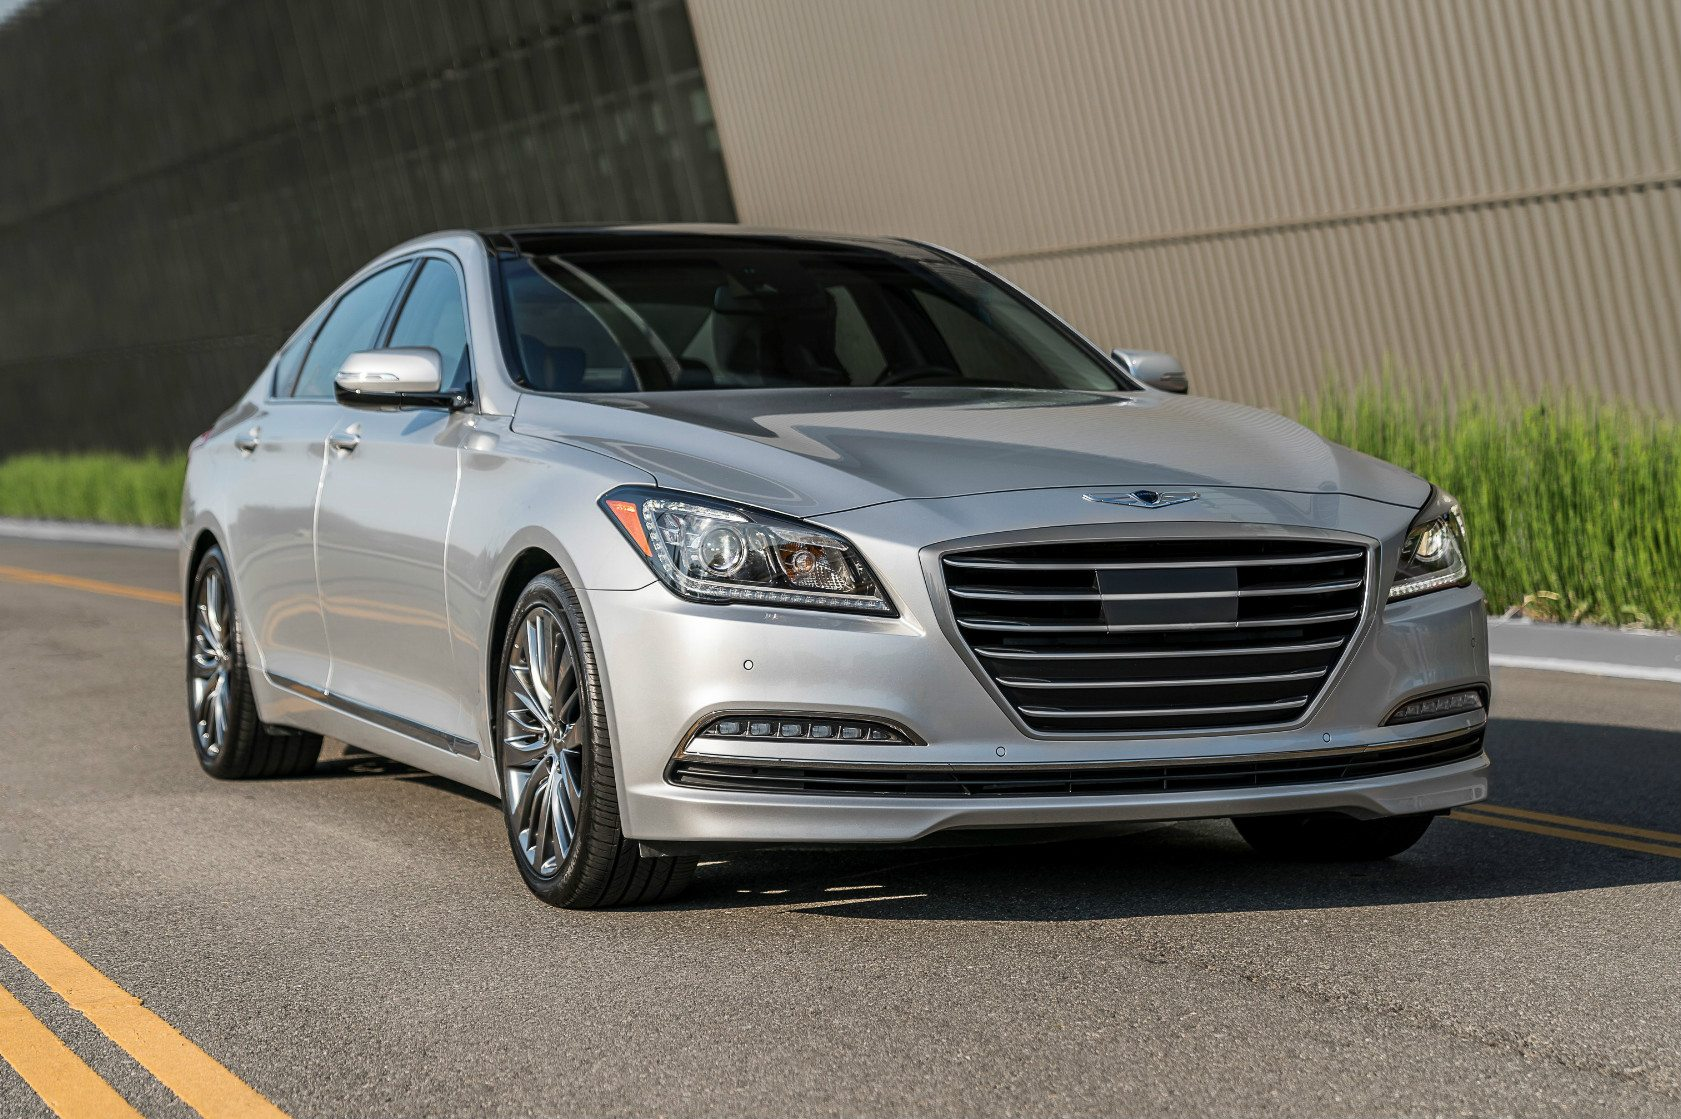 More Than Minivans: The 2017 Genesis G80 Sets a New Standard for Luxury Sedans